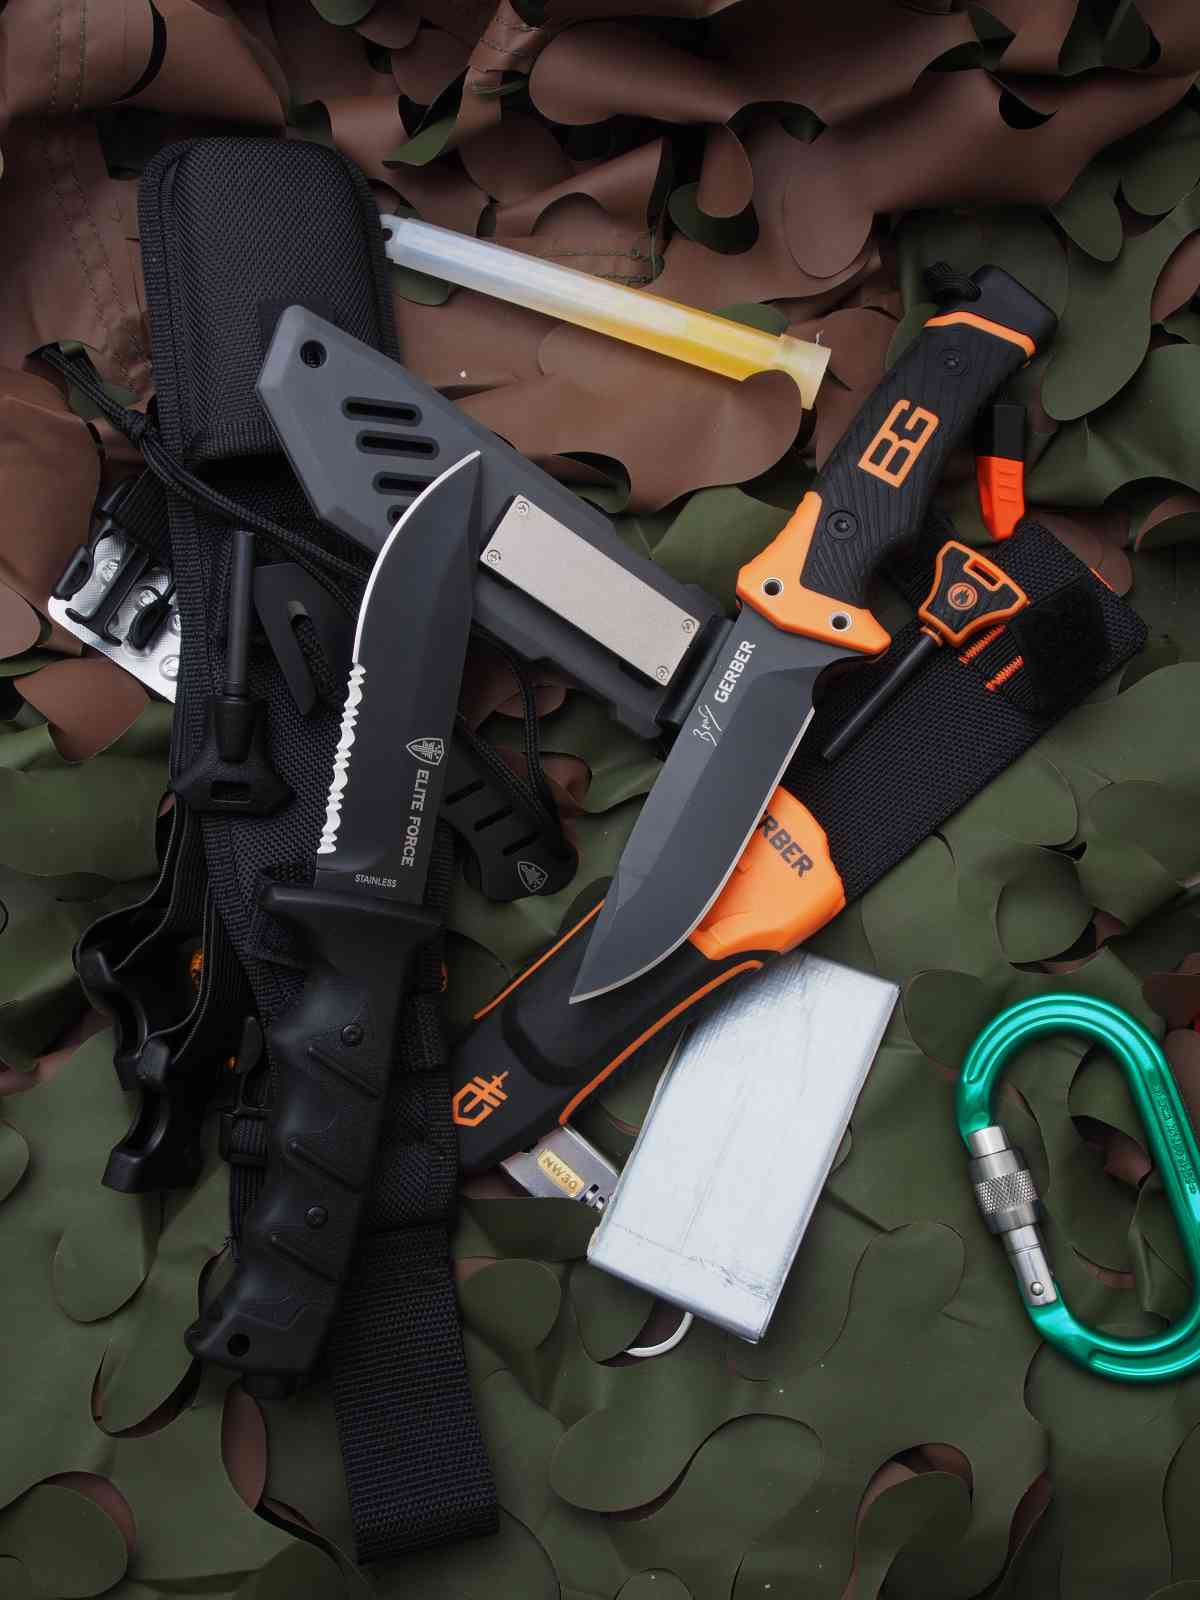 Umarex Elite Force EF 703 Kit oder Gerber Bear Grylls Ultimate